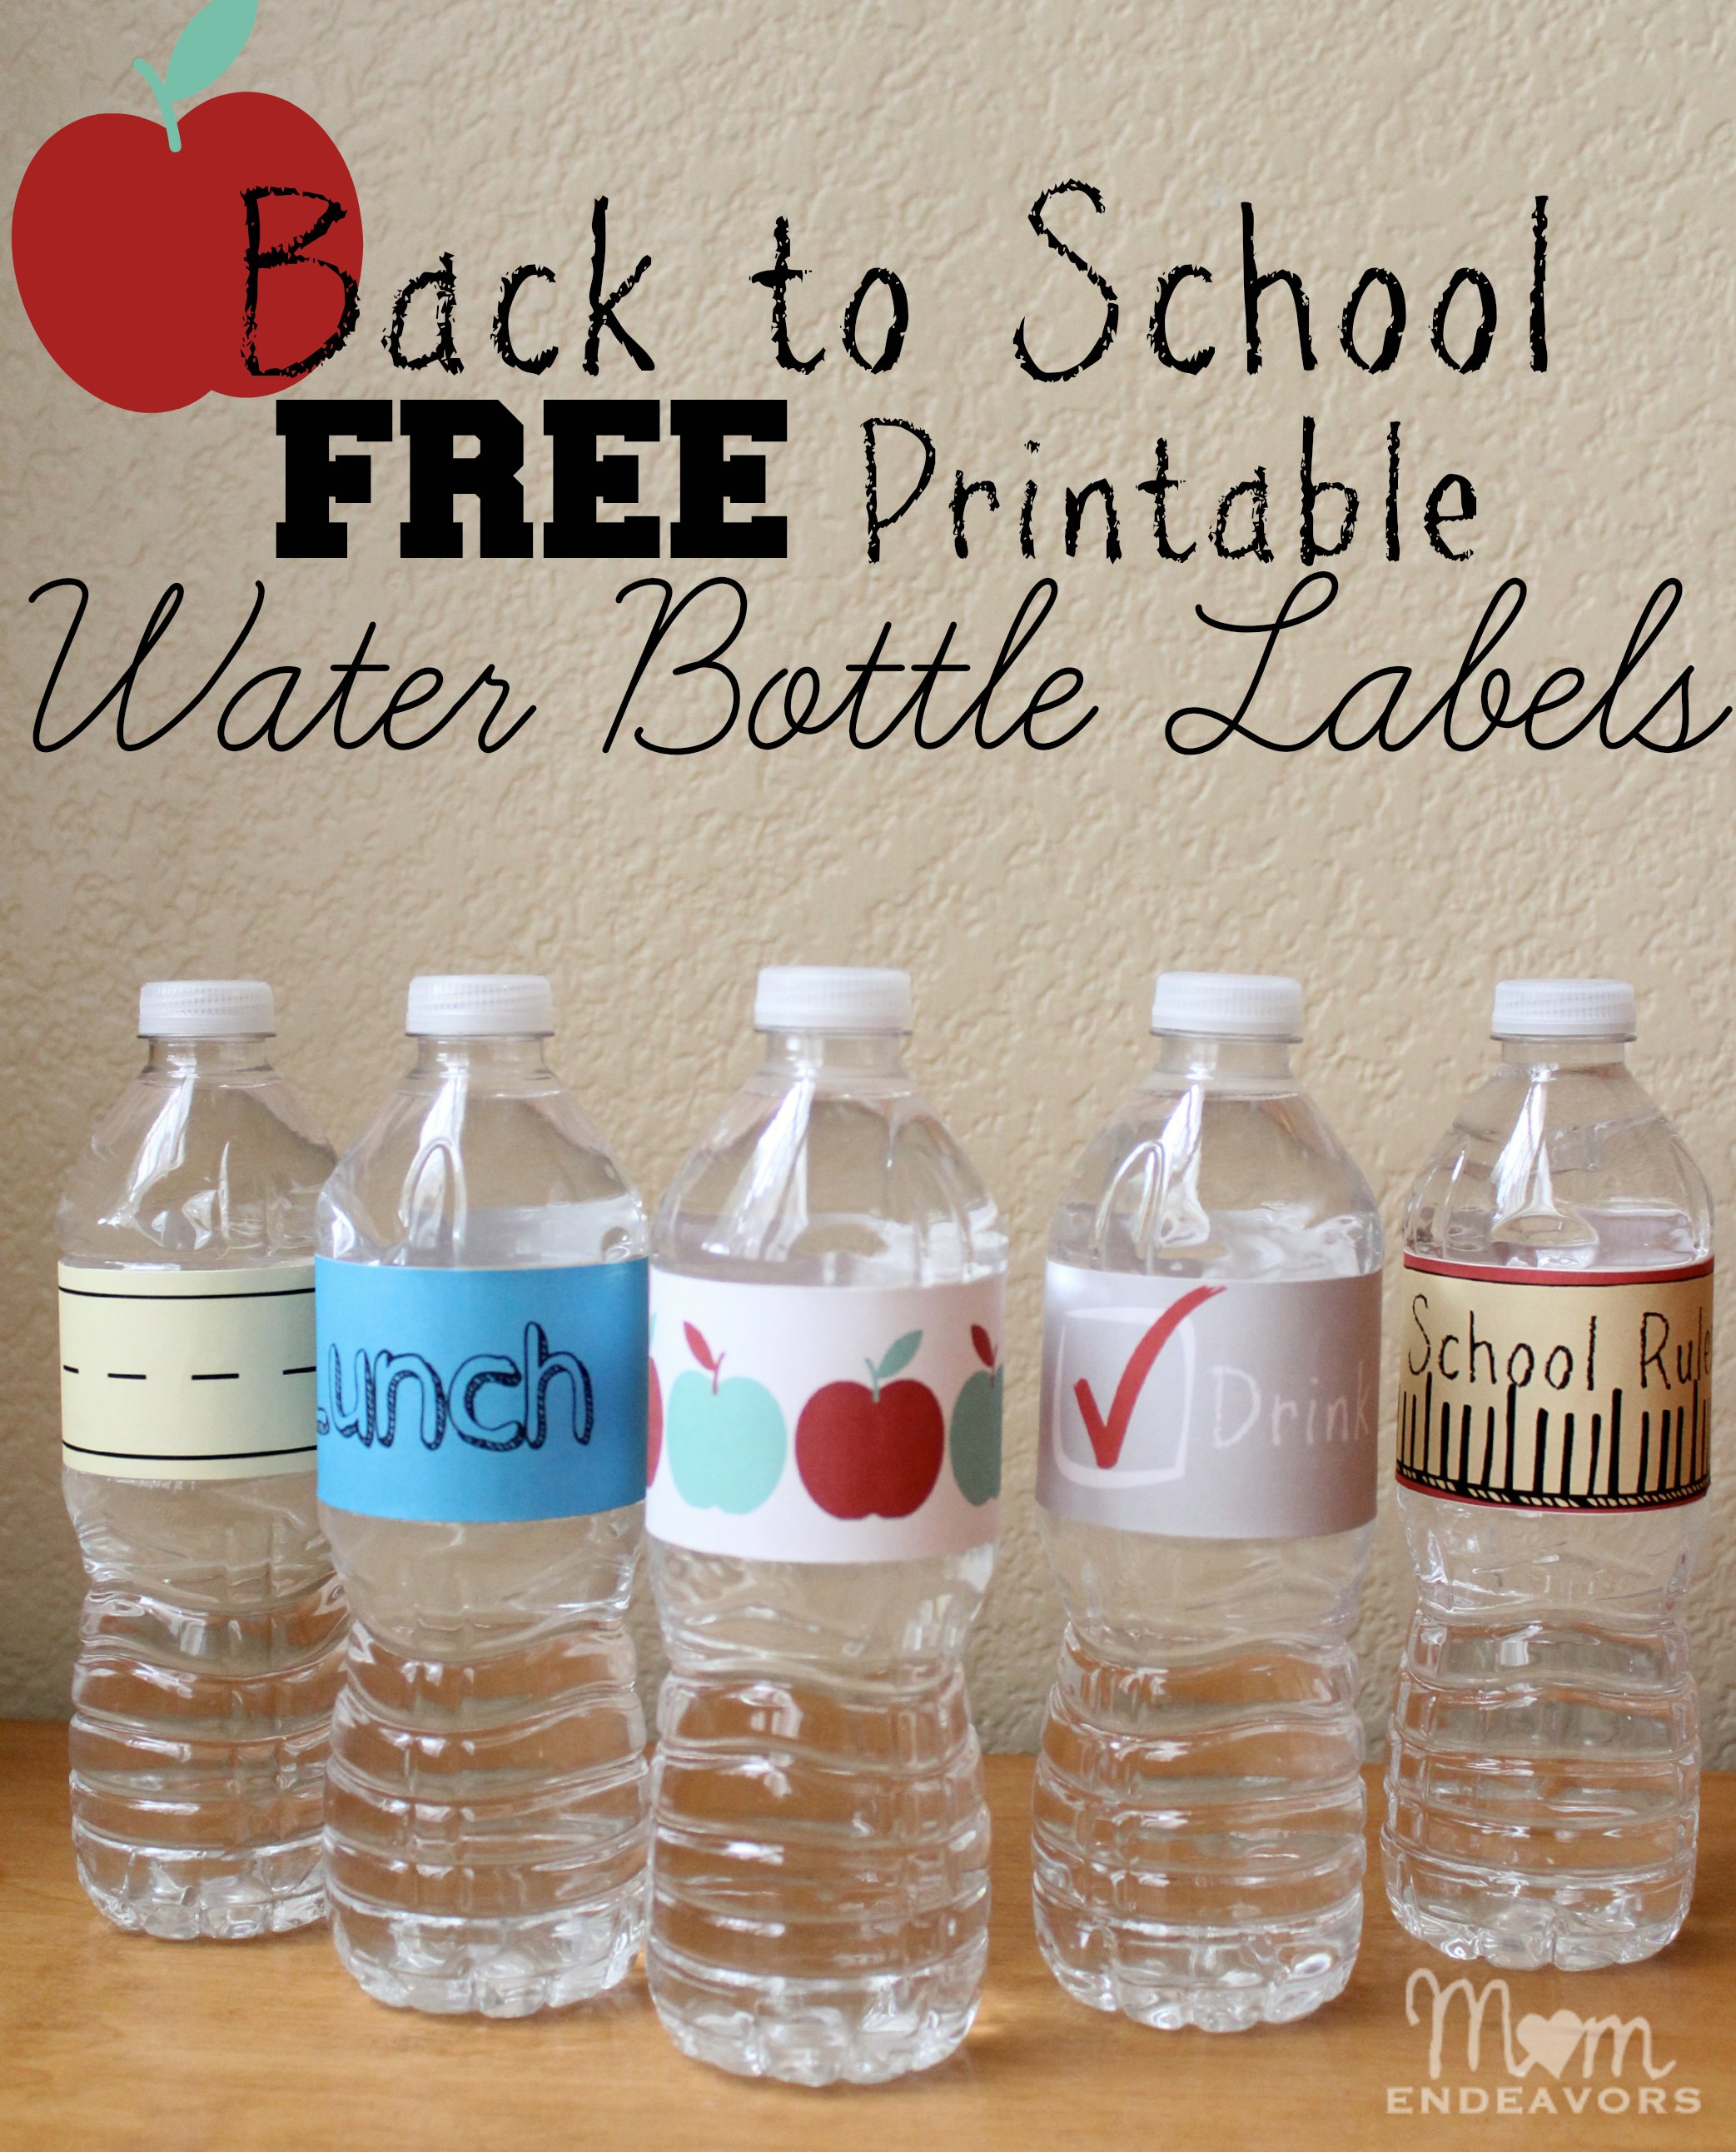 Hilaire image in printable water bottle labels